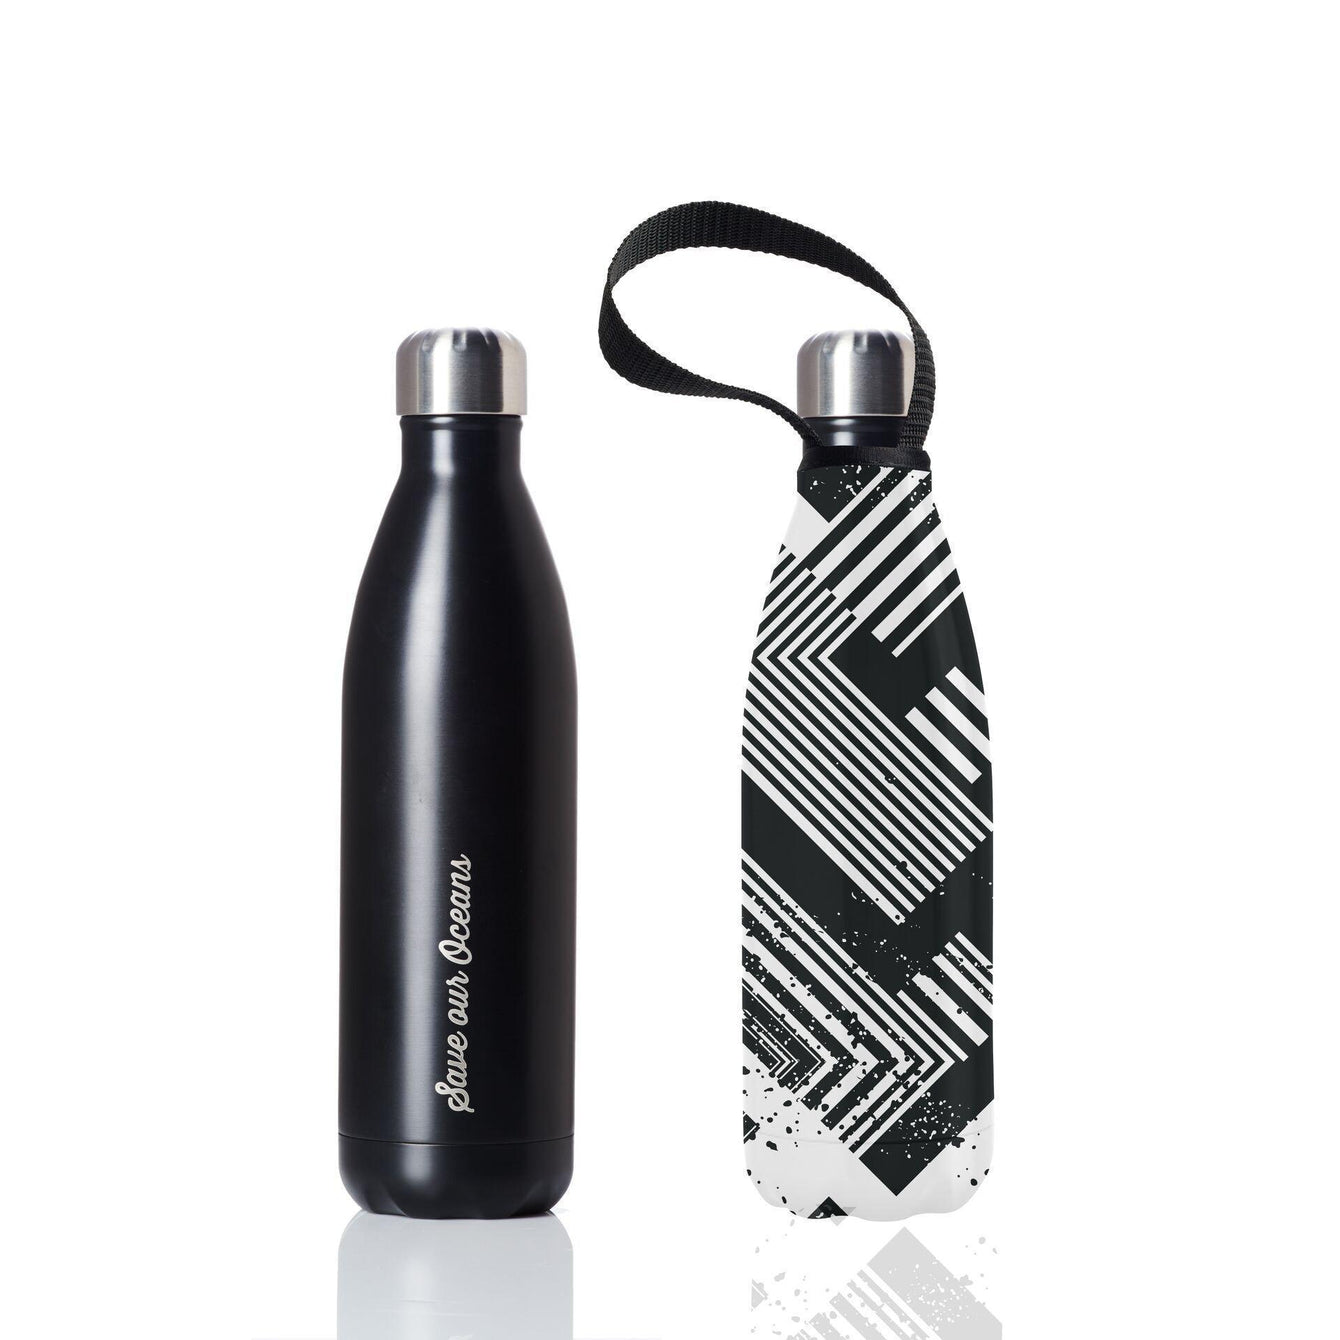 Insulated Eco Friendly 25oz Drink Bottle with Patterned Carry Covers-Home - Travel + Outdoors - Drink Bottles-BBBYO USA-Black in Circuit Pattern-Peccadilly